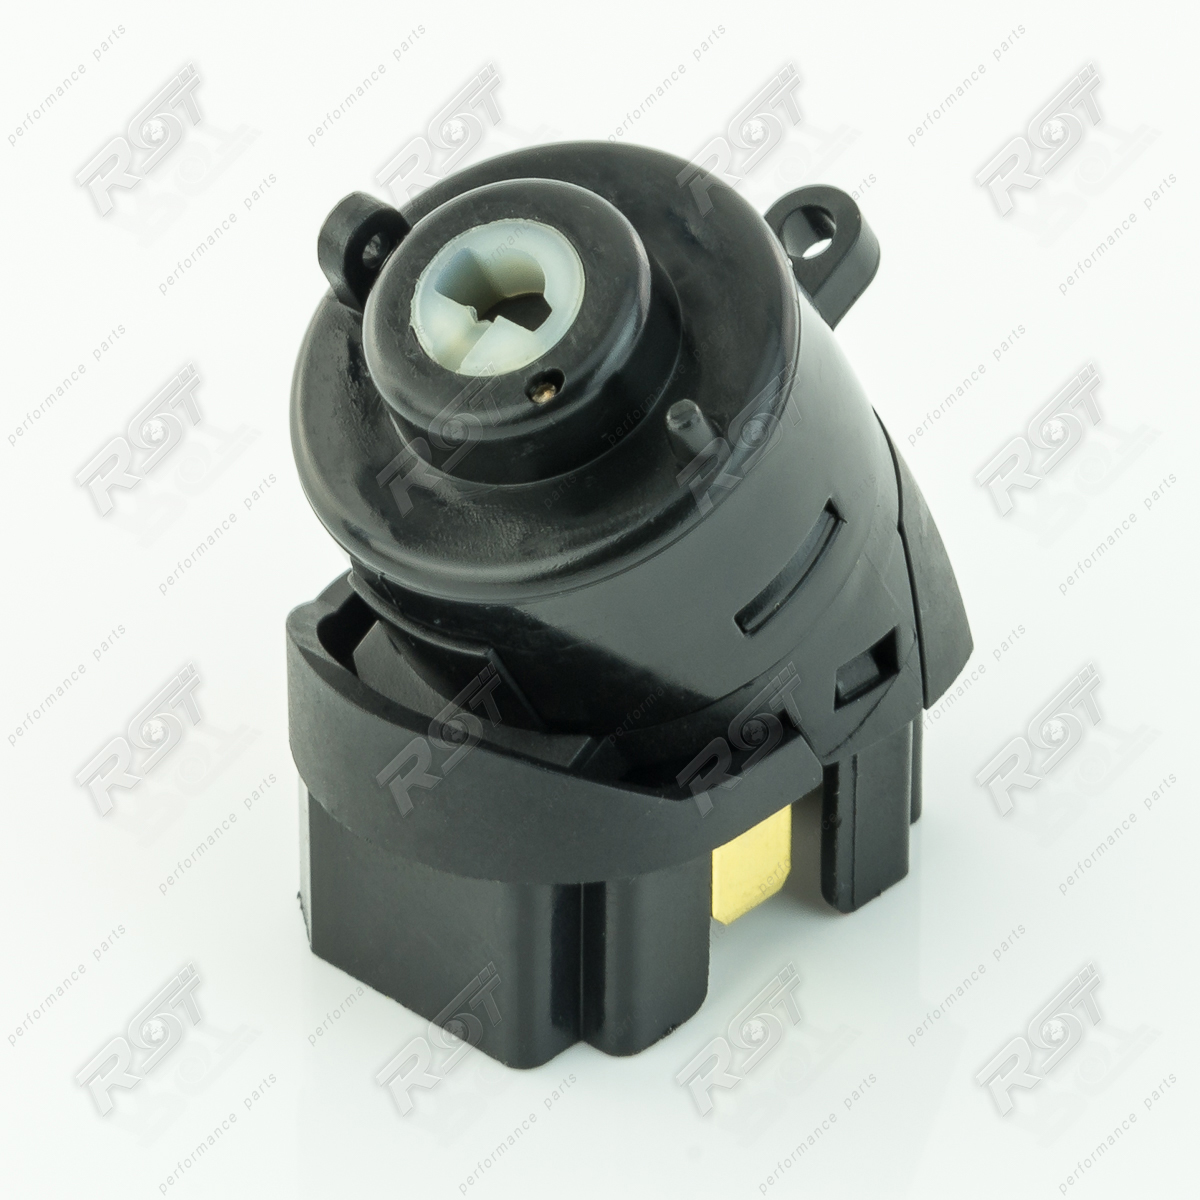 ignition switch starting switch starter for vw caddy ii. Black Bedroom Furniture Sets. Home Design Ideas